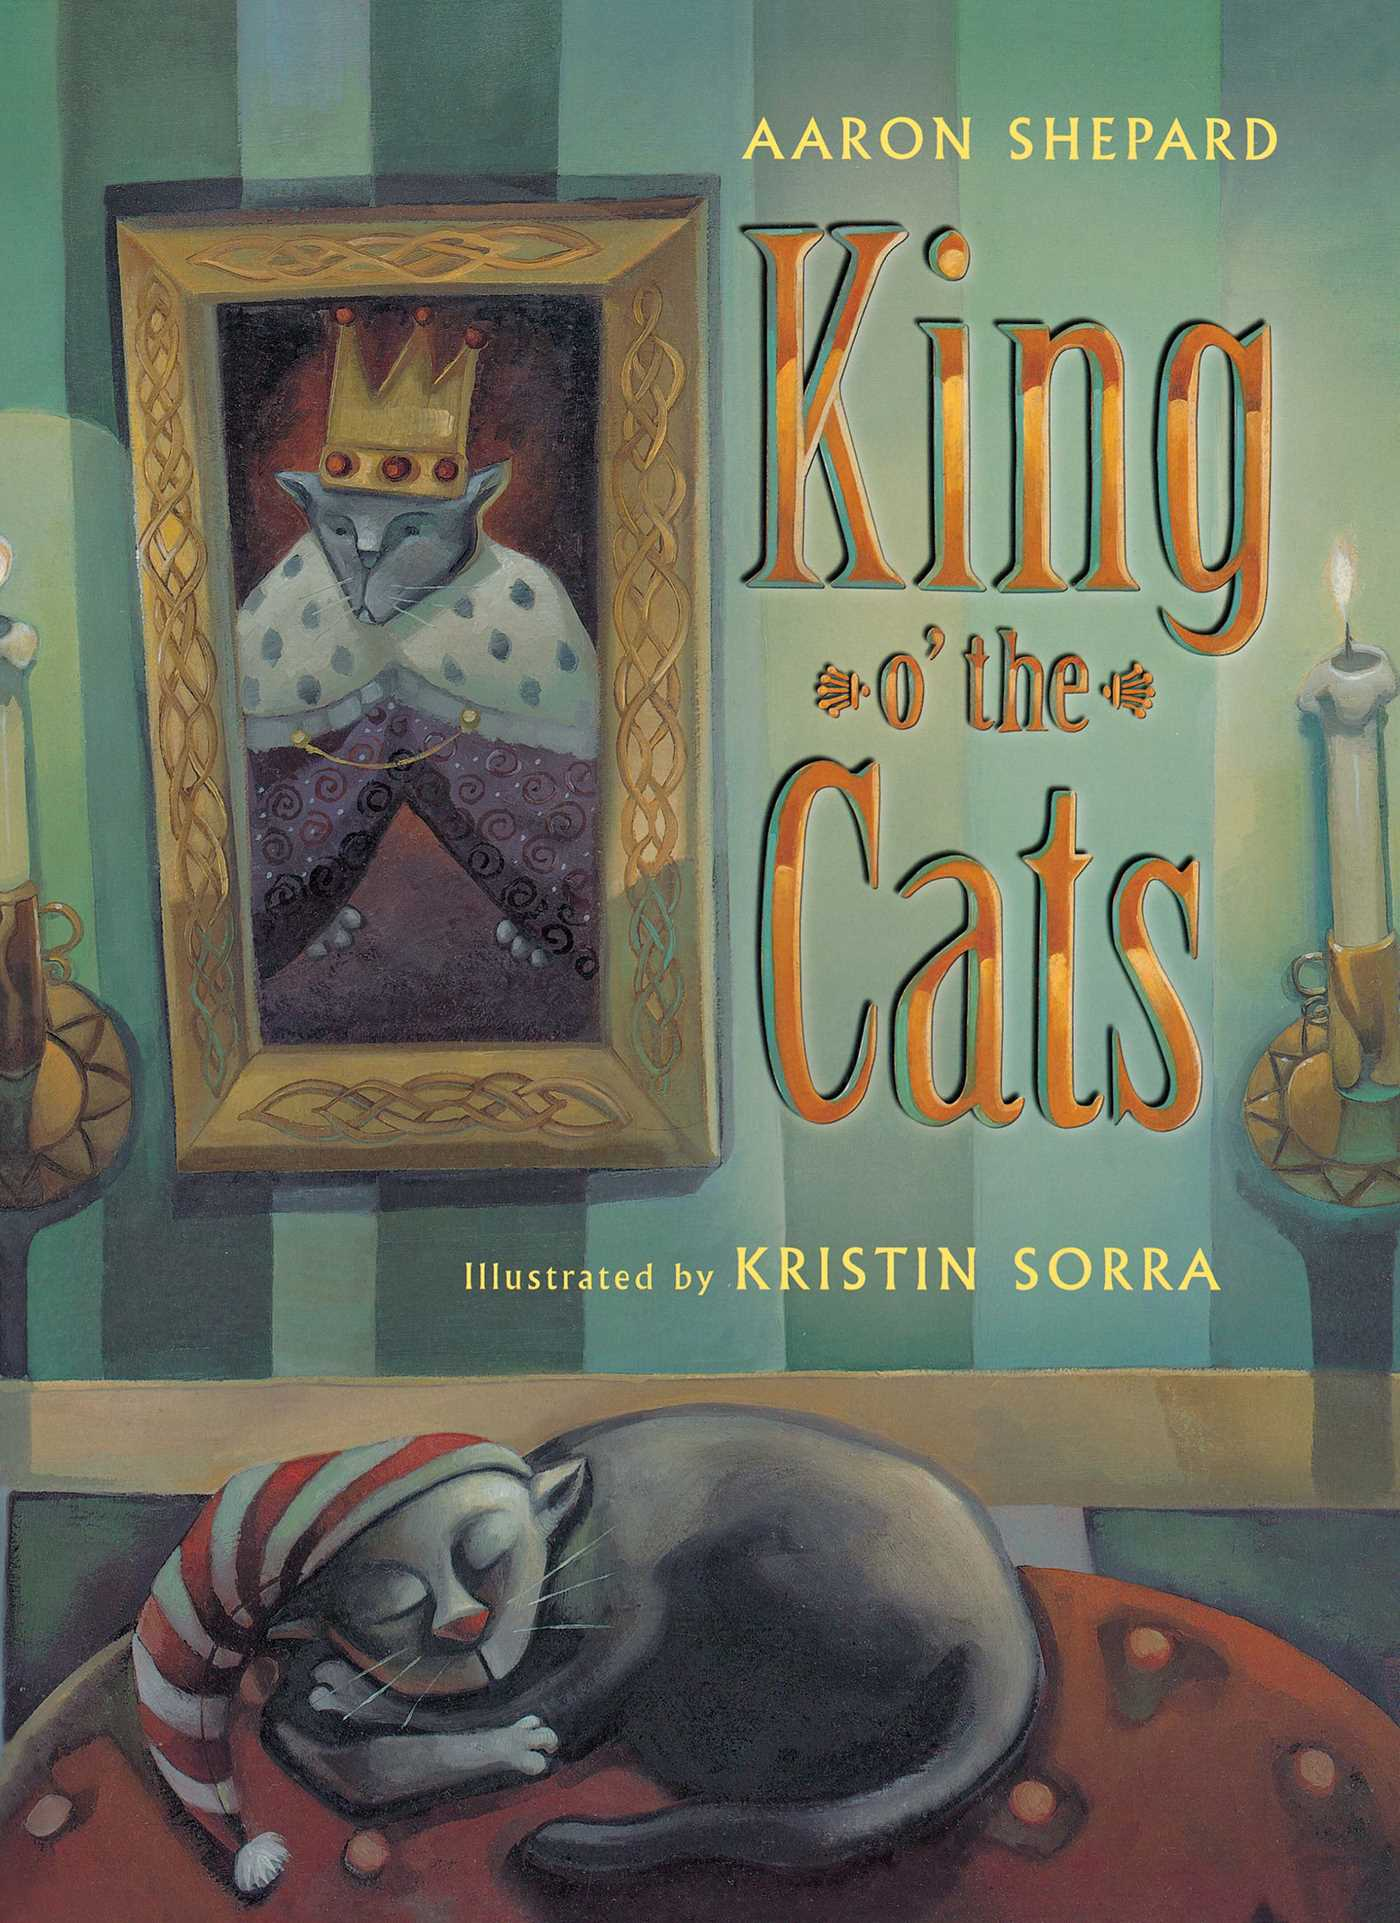 King-o-the-cats-9781442412569_hr